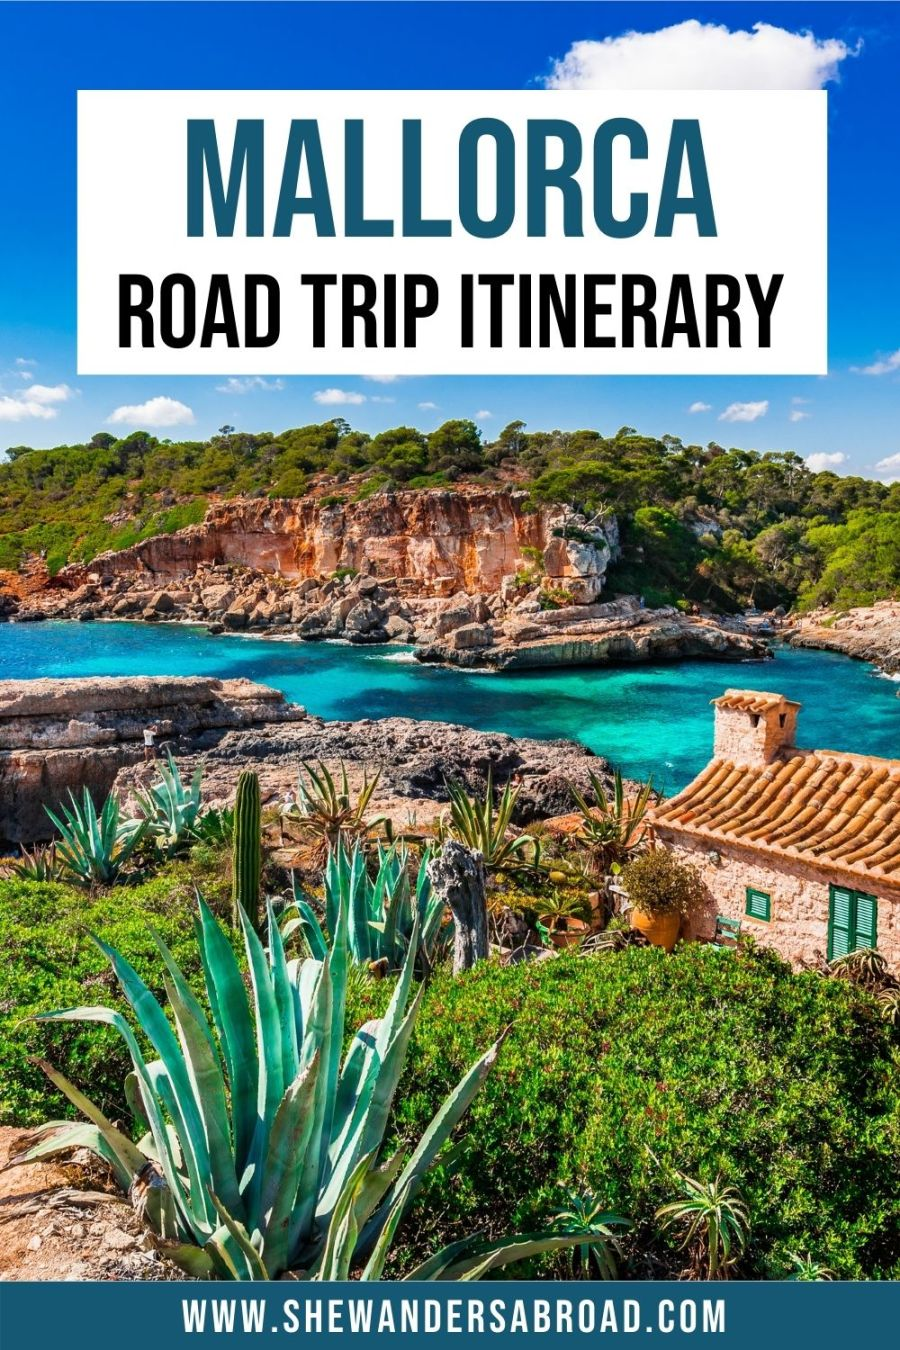 The Perfect Mallorca Road Trip Itinerary for 4 Days